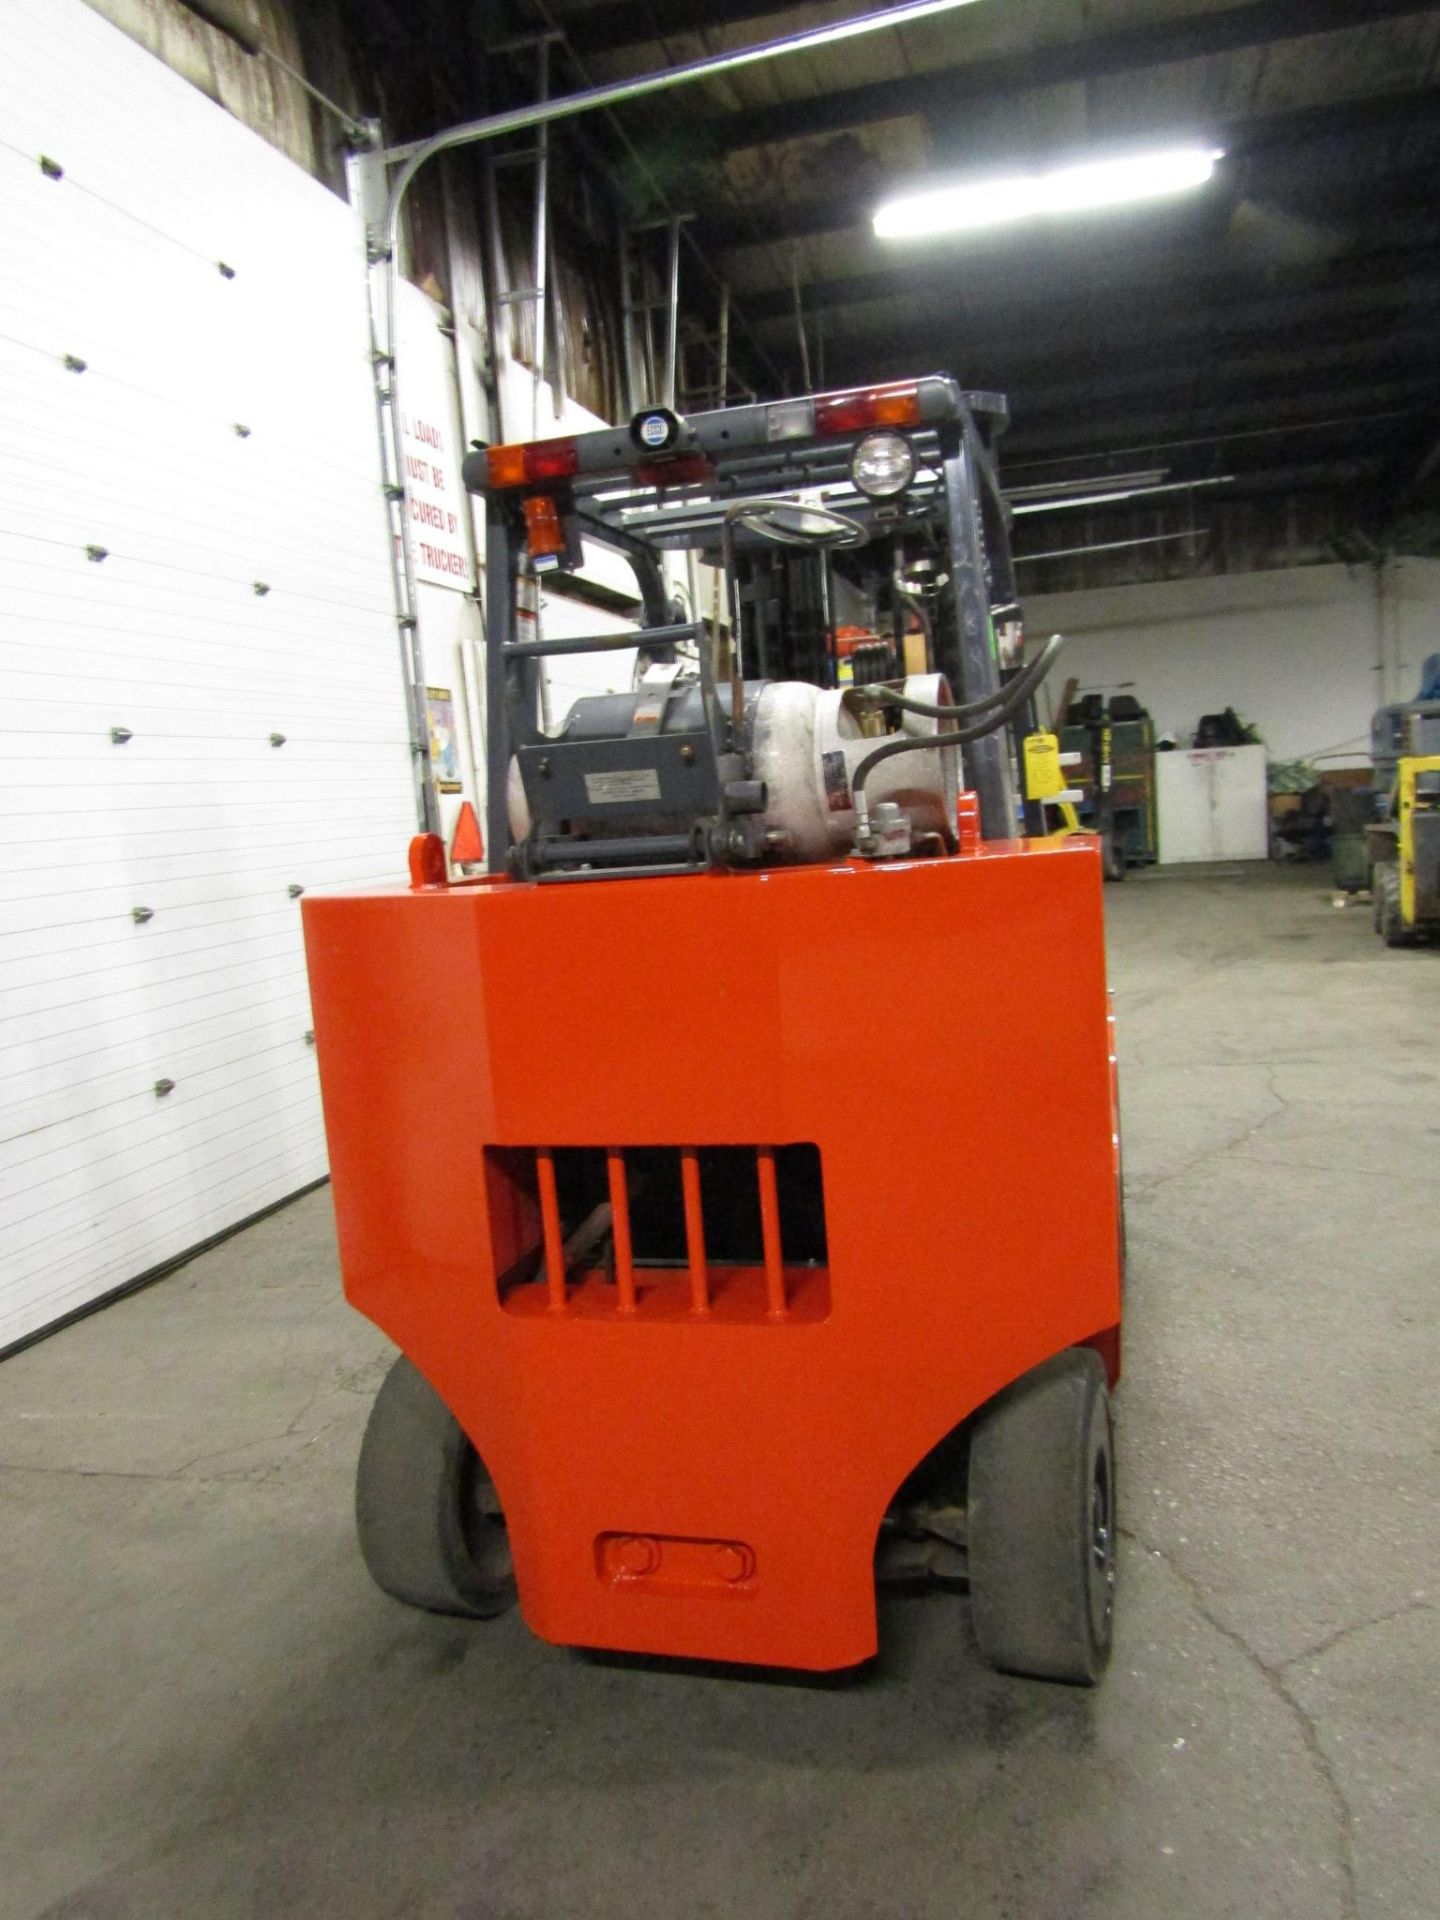 Lot 170 - Toyota 12000lbs Capacity Forklift BOX CAR SPECIAL with 3-stage mast and sideshift and fork